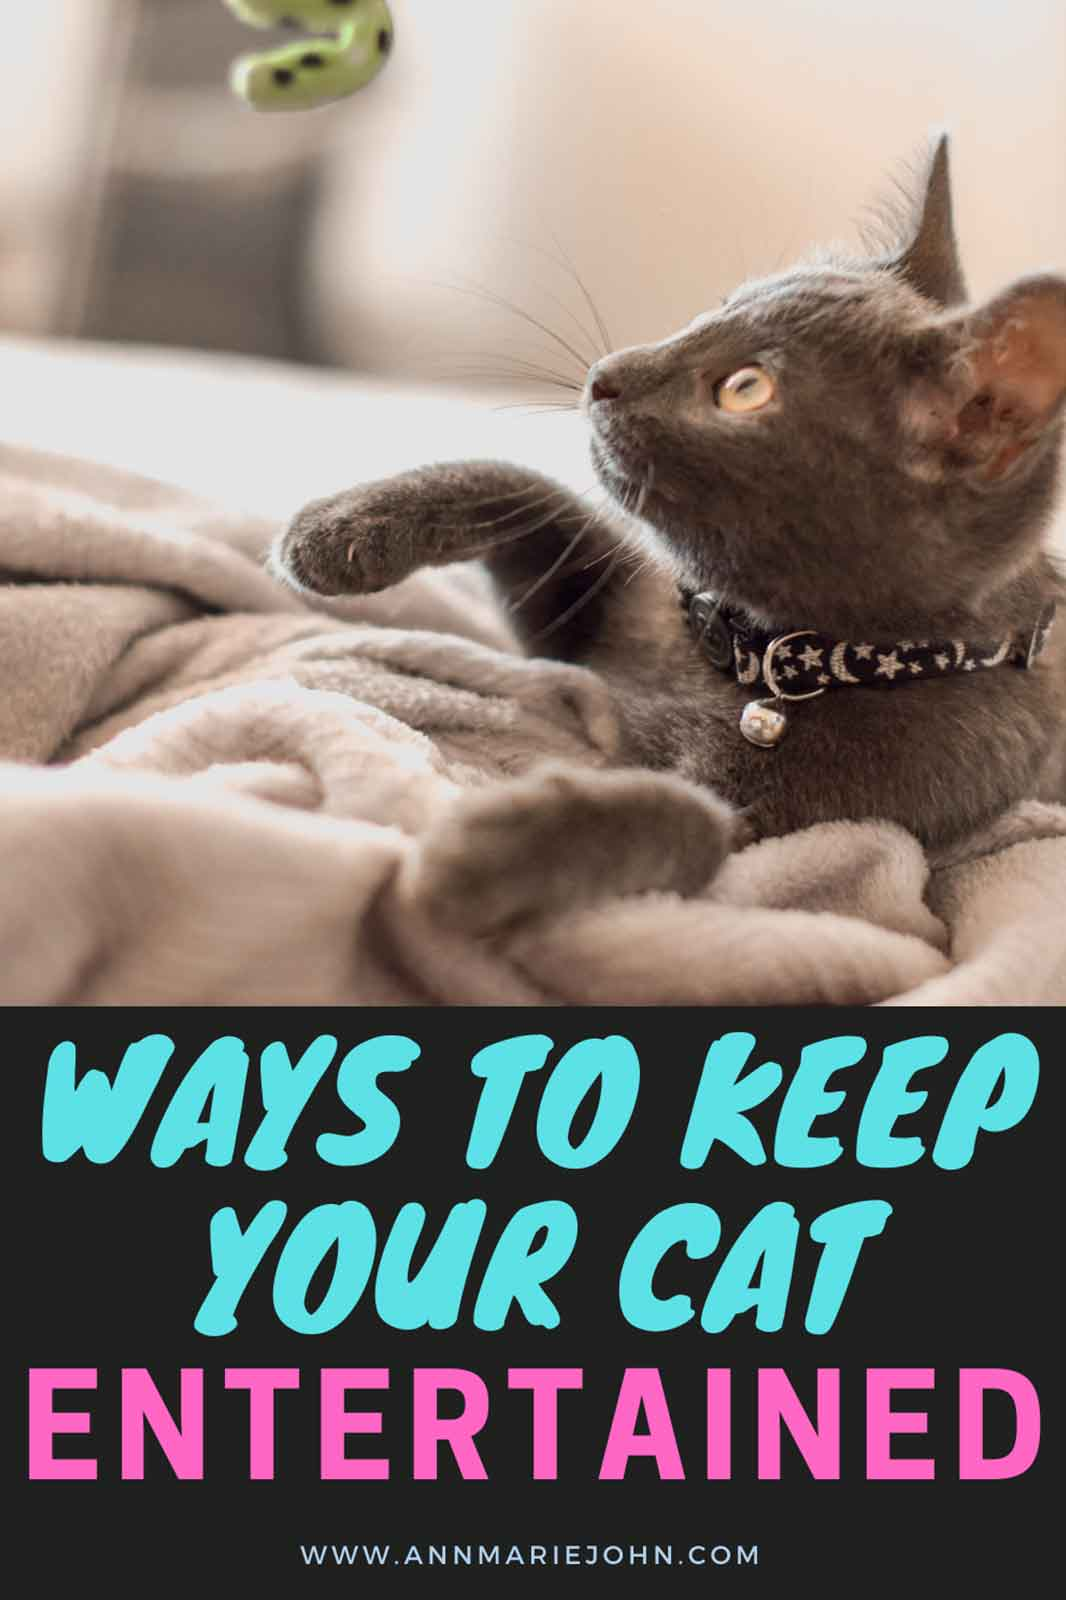 Ways To Keep Your Cat Entertained